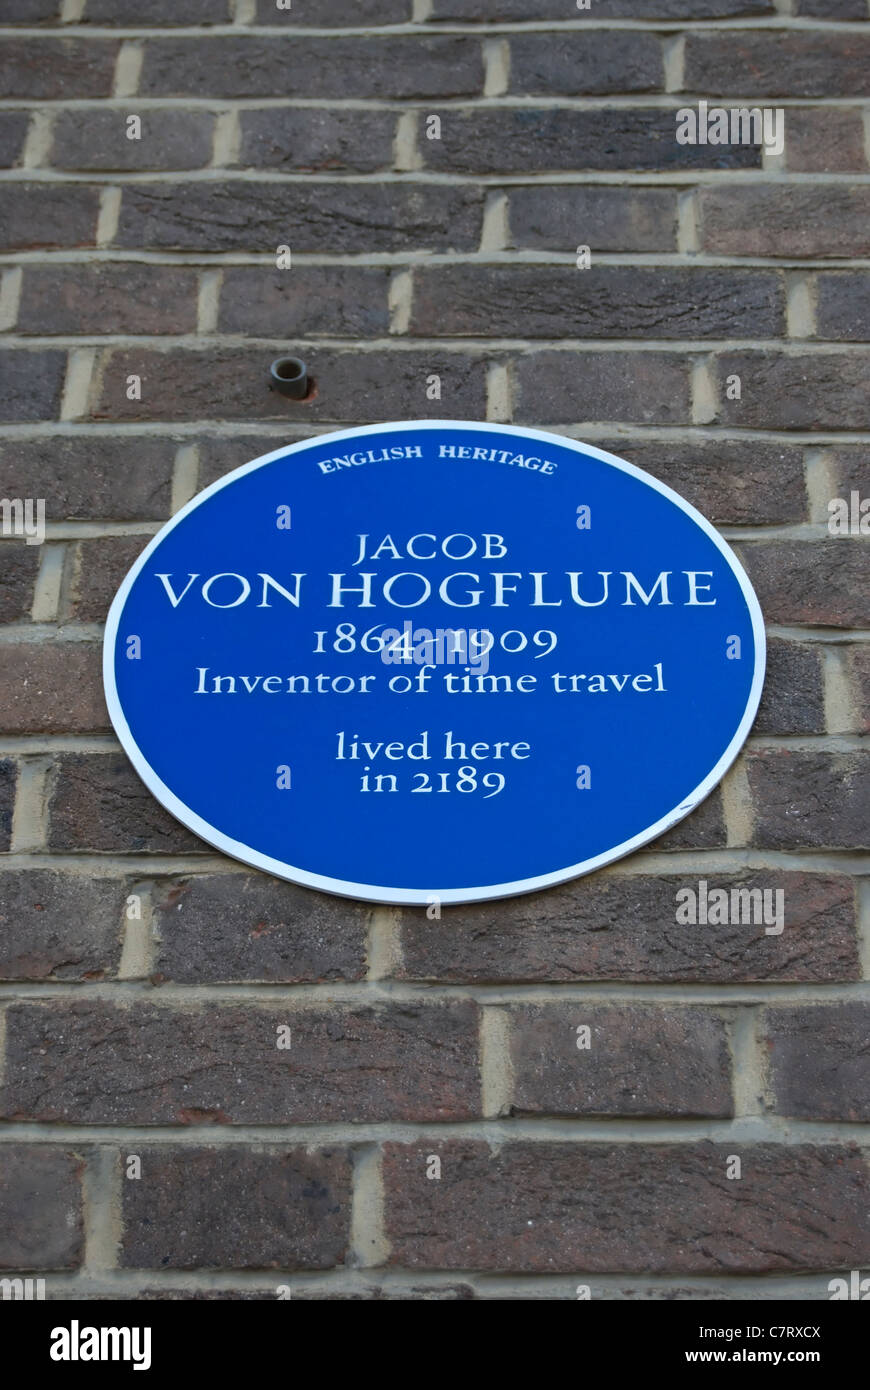 spoof english heritage blue plaque claiming to mark a home of time travel inventor jacob von hogflume Stock Photo